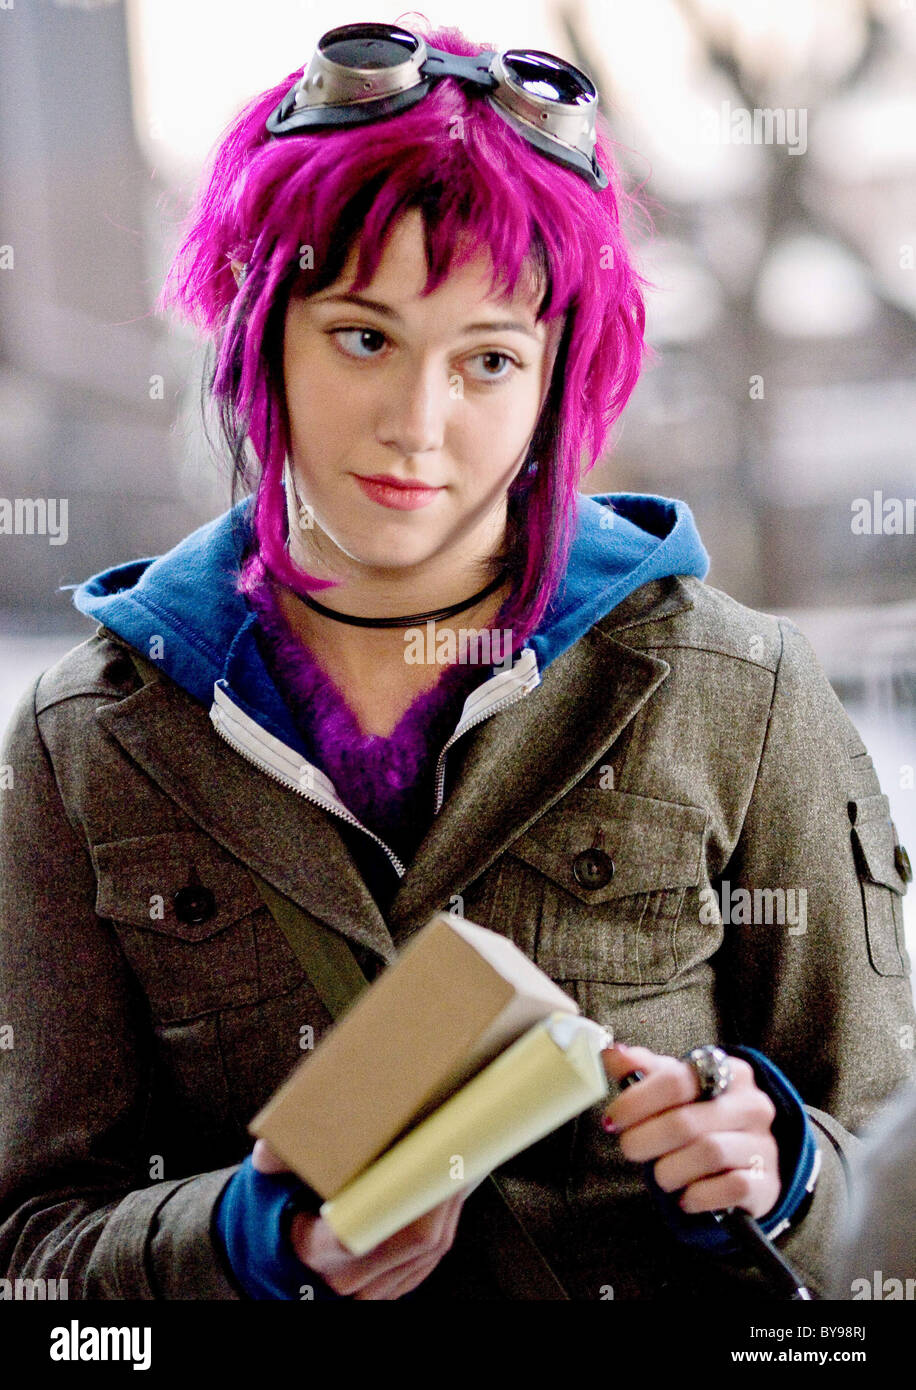 Scott Pilgrim vs. the World Year : 2010 USA Director : Edgar Wright Mary Elizabeth Winstead - Stock Image